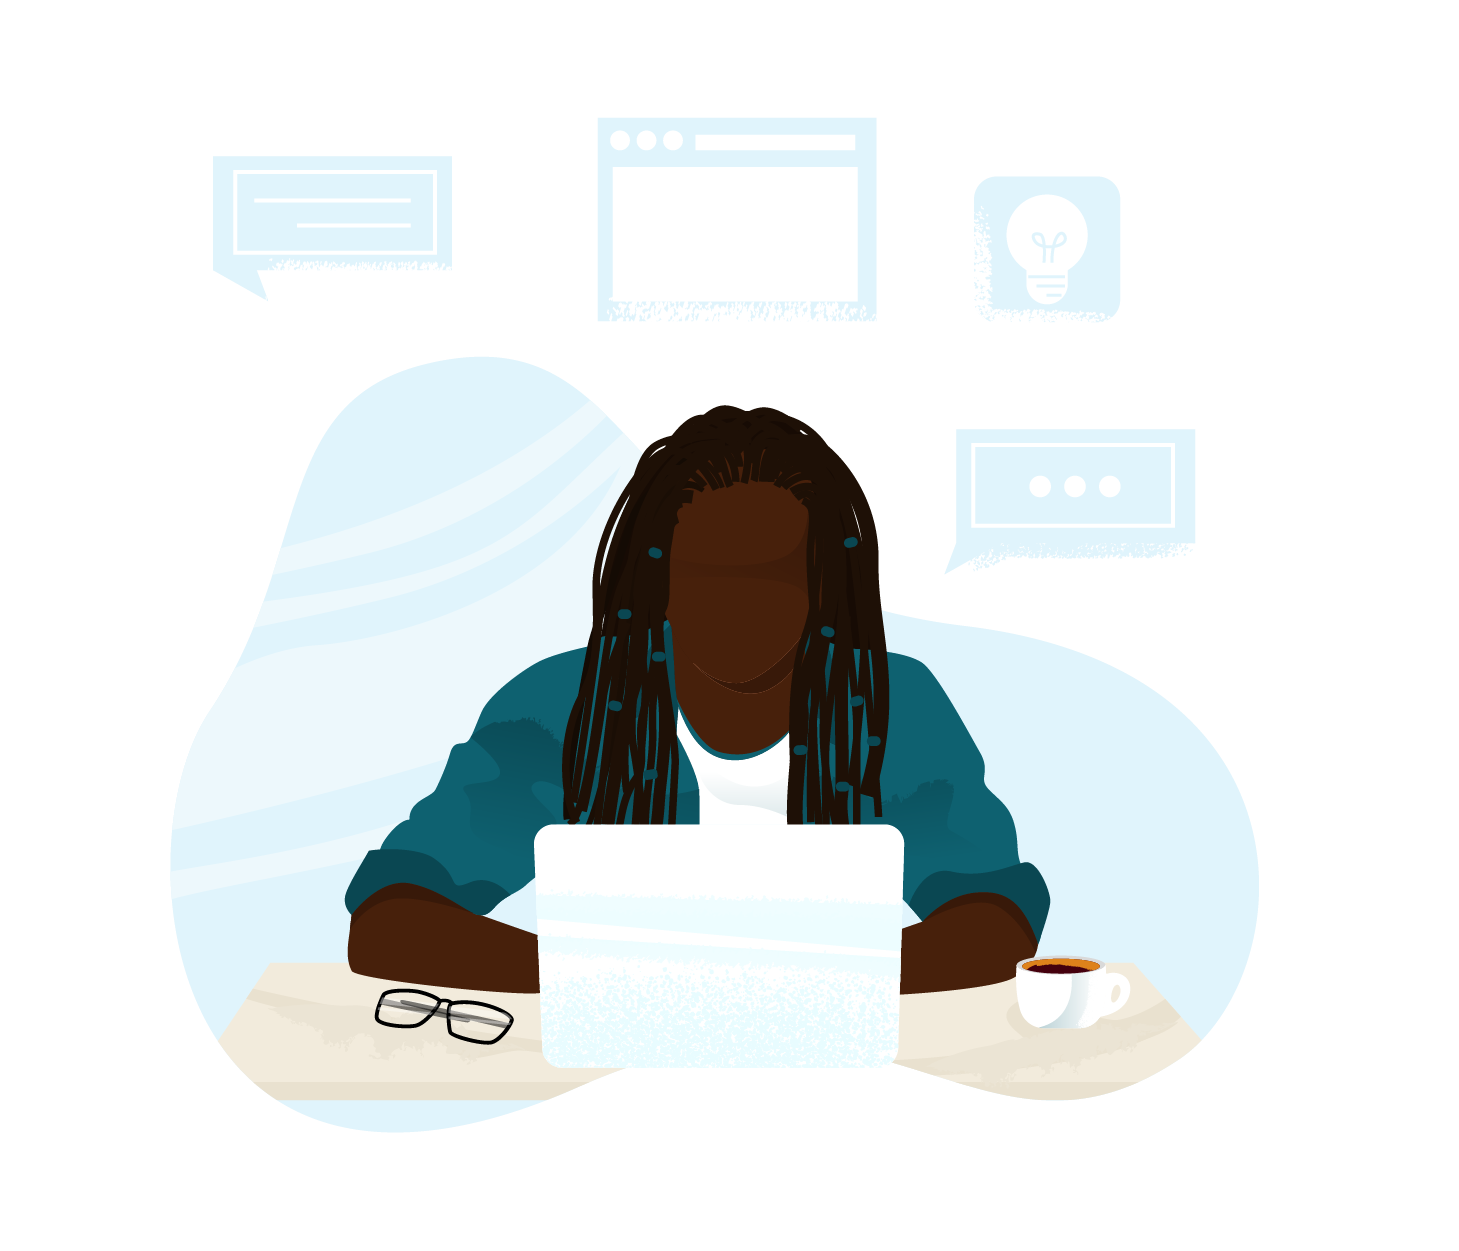 An illustration of a black woman with braids looking at a laptop